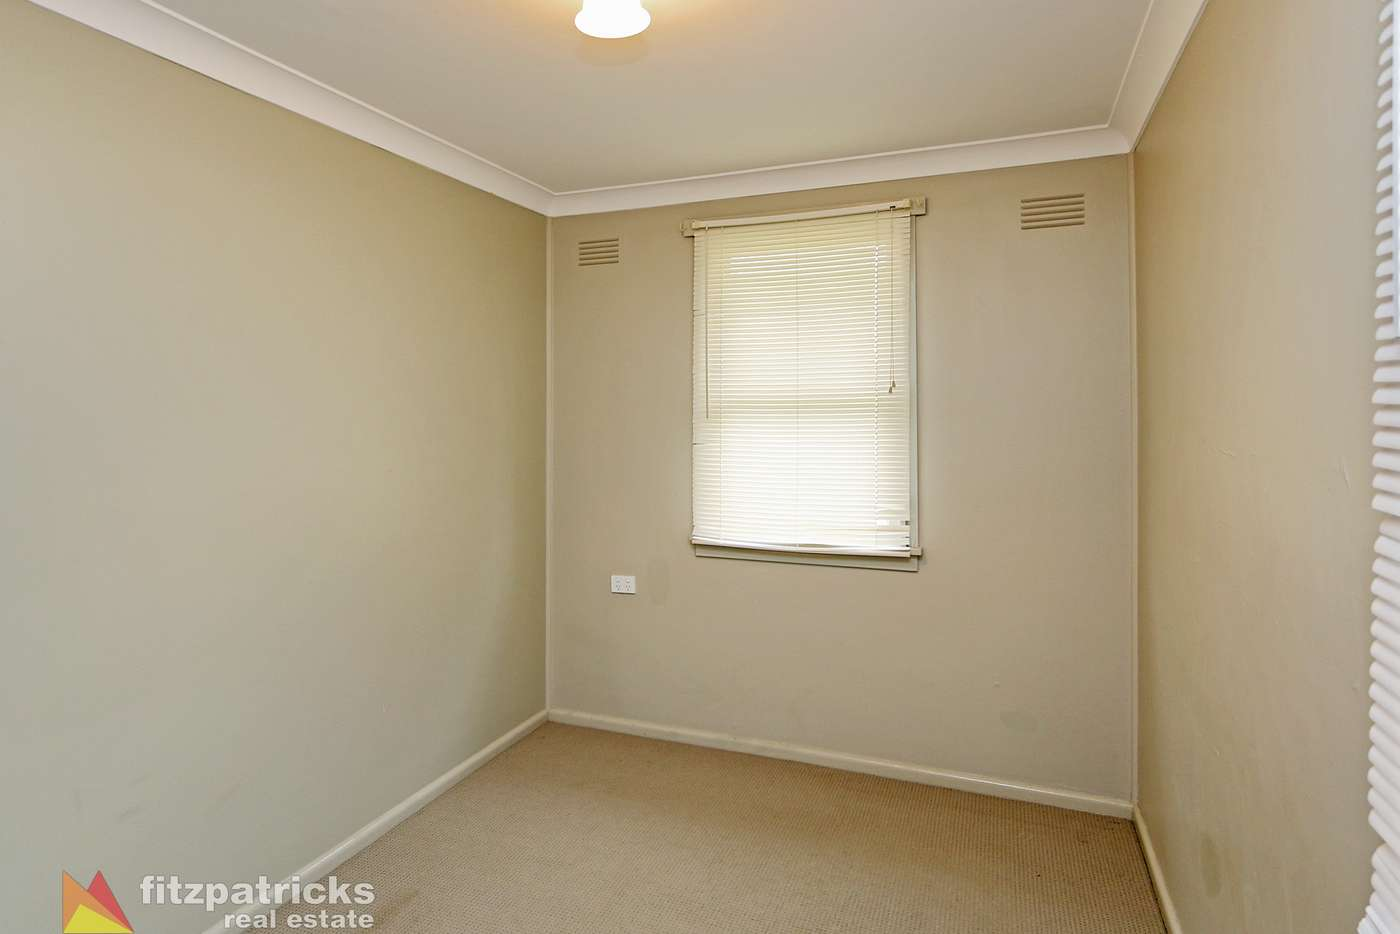 Sixth view of Homely house listing, 27 McKell Avenue, Mount Austin NSW 2650